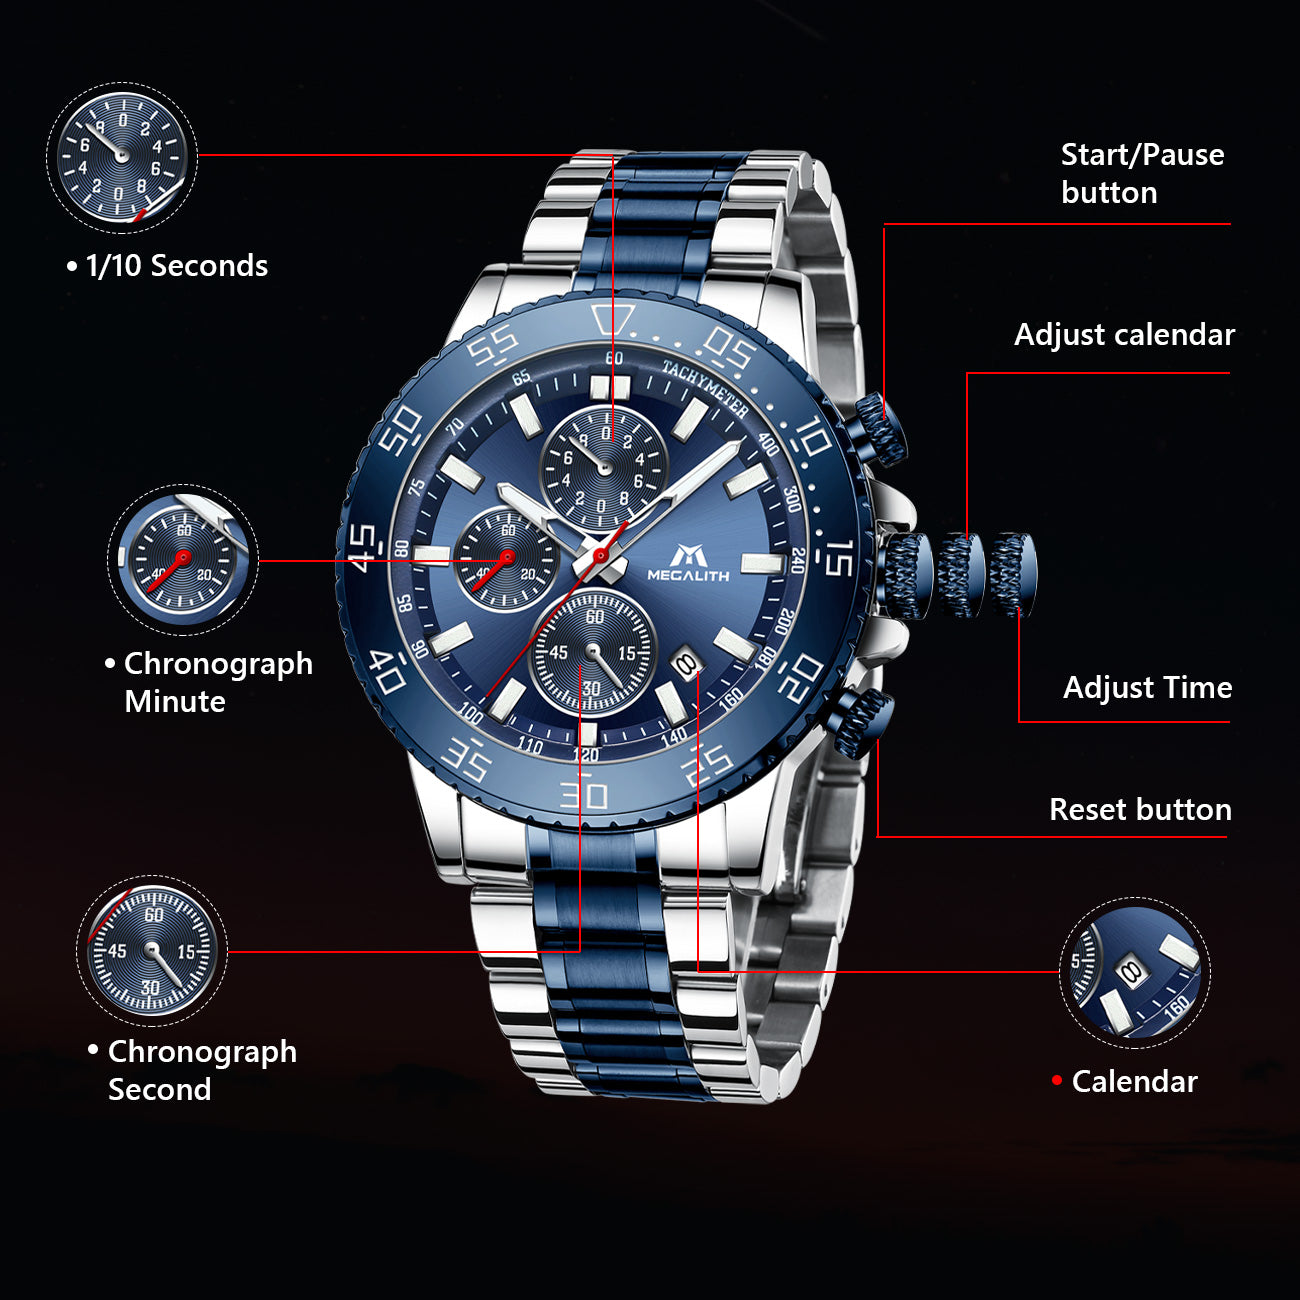 MEGALITH Mens Watches Men Chronograph Blue Large Face Designer Dress Waterproof Stainless Steel Wrist Watch Fashion Business Calendar Watches for Man-megalith watch